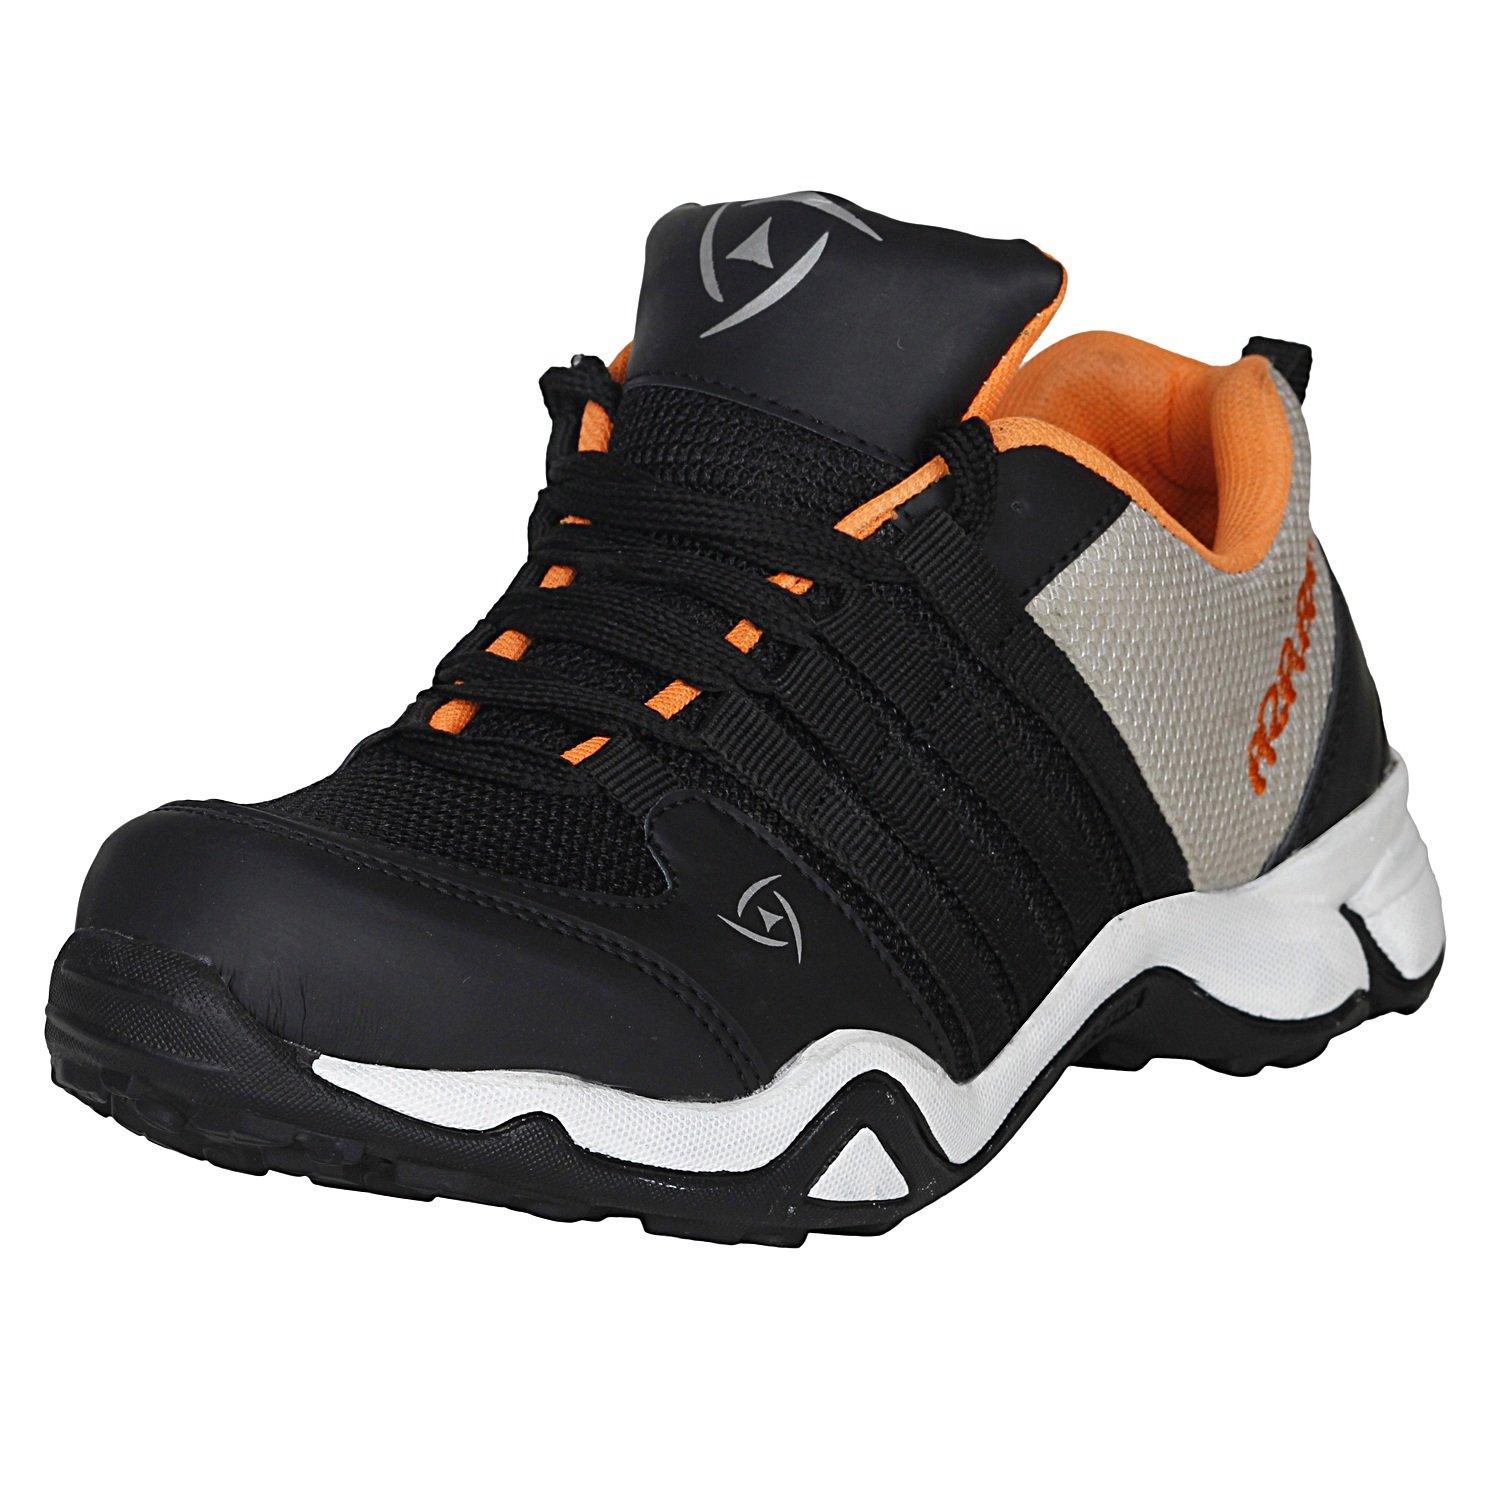 sports addition shoes 28 images sports addition shoes